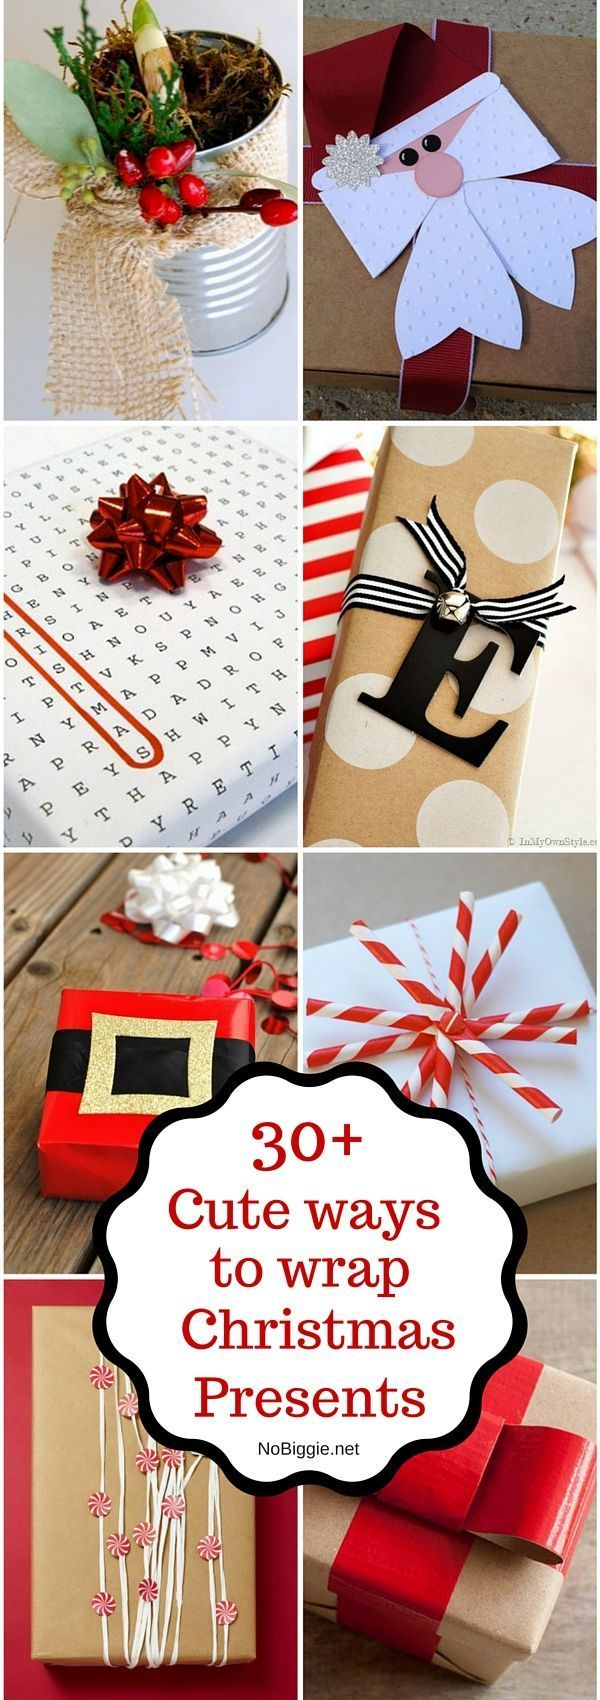 out these cute ideas for wrapping Christmas gifts! 30 Christmas Wrapping IdeasCheck out these cute ideas for wrapping Christmas gifts! 30 Christmas Wrapping Ideas